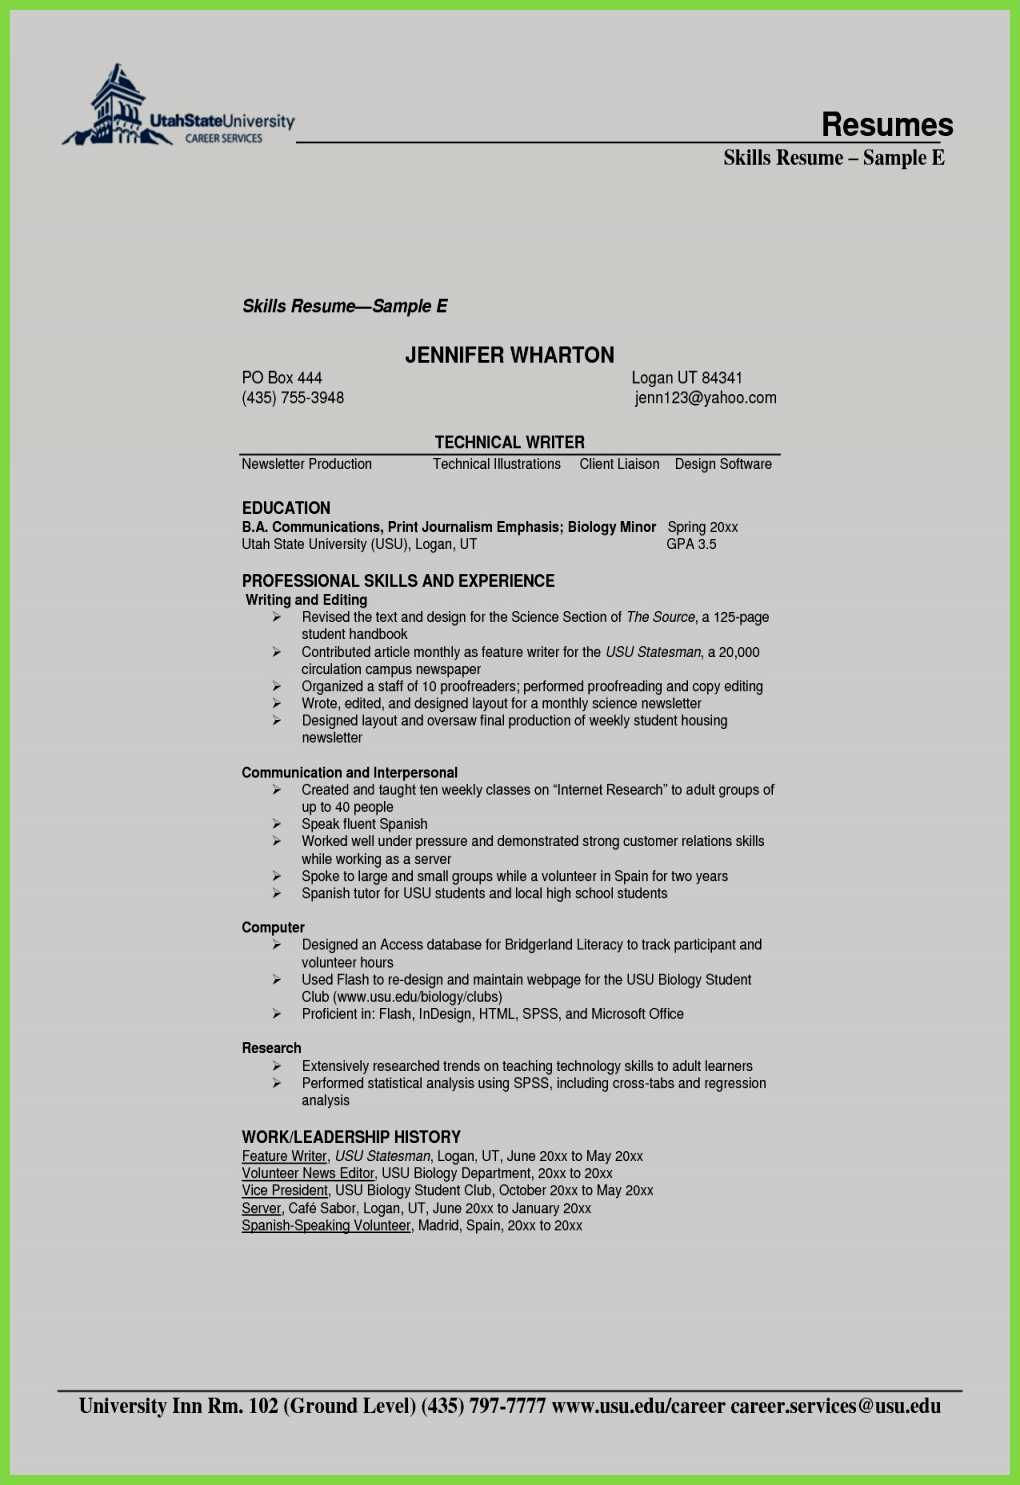 71 New Gallery Of Education Section On A Resume Example Check More At Https Www Ourpetscrawley Com 71 New Gallery Of Education Section On A Resume Example